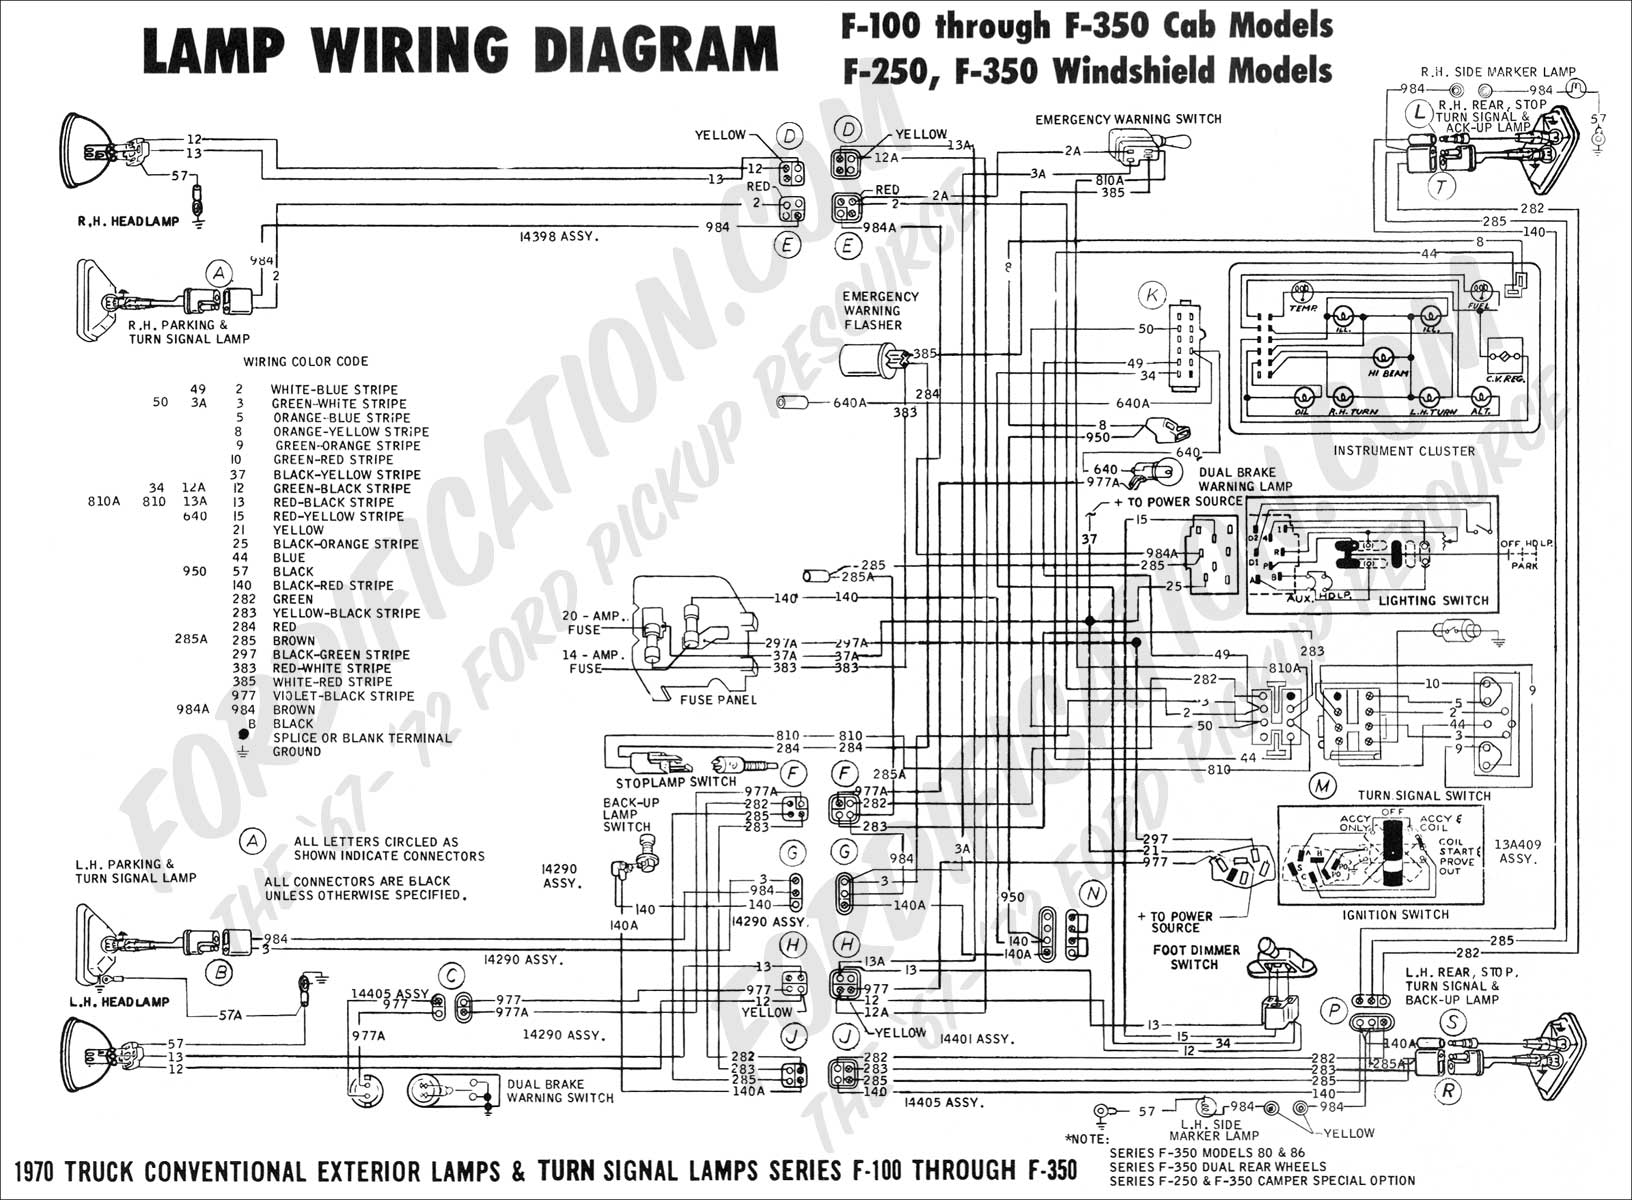 ford truck technical drawings and schematics section h wiring rh  fordification com 1975 Ford F100 Engine Wiring Ford F100 Dash Wiring